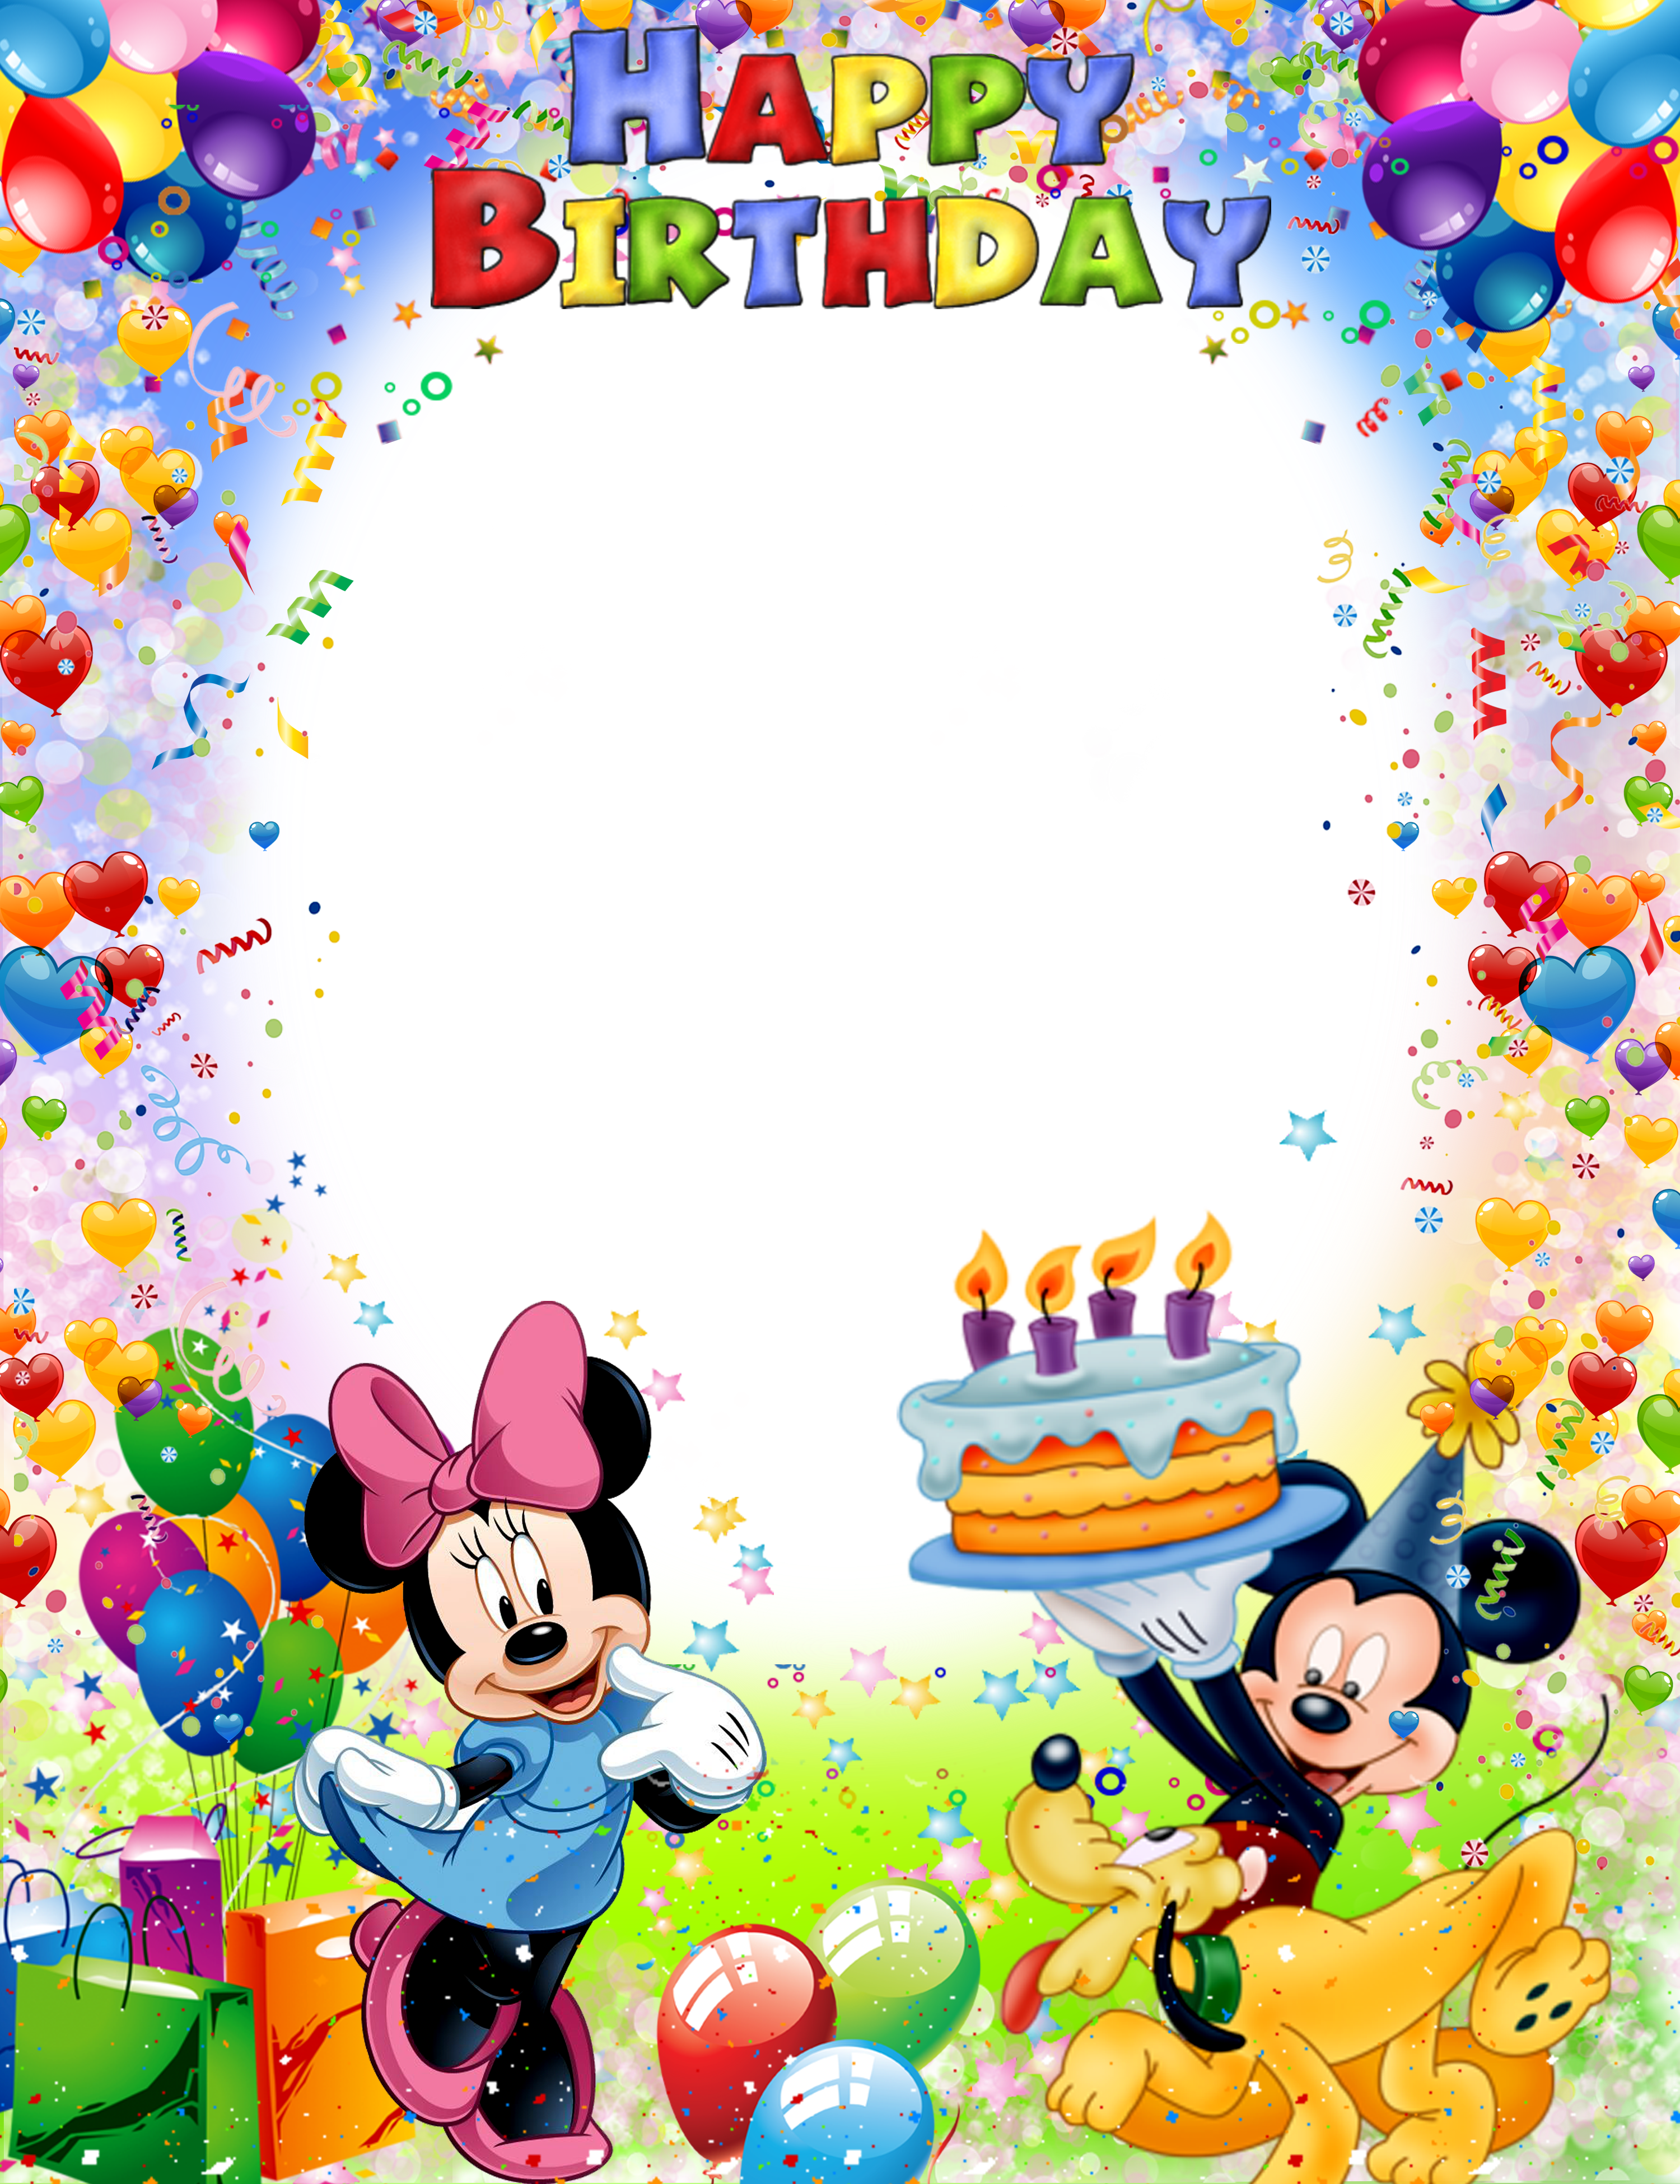 Pin By Ionela Rugea On Disney Frames Happy Birthday Frame Birthday Photo Frame Happy Birthday Kids